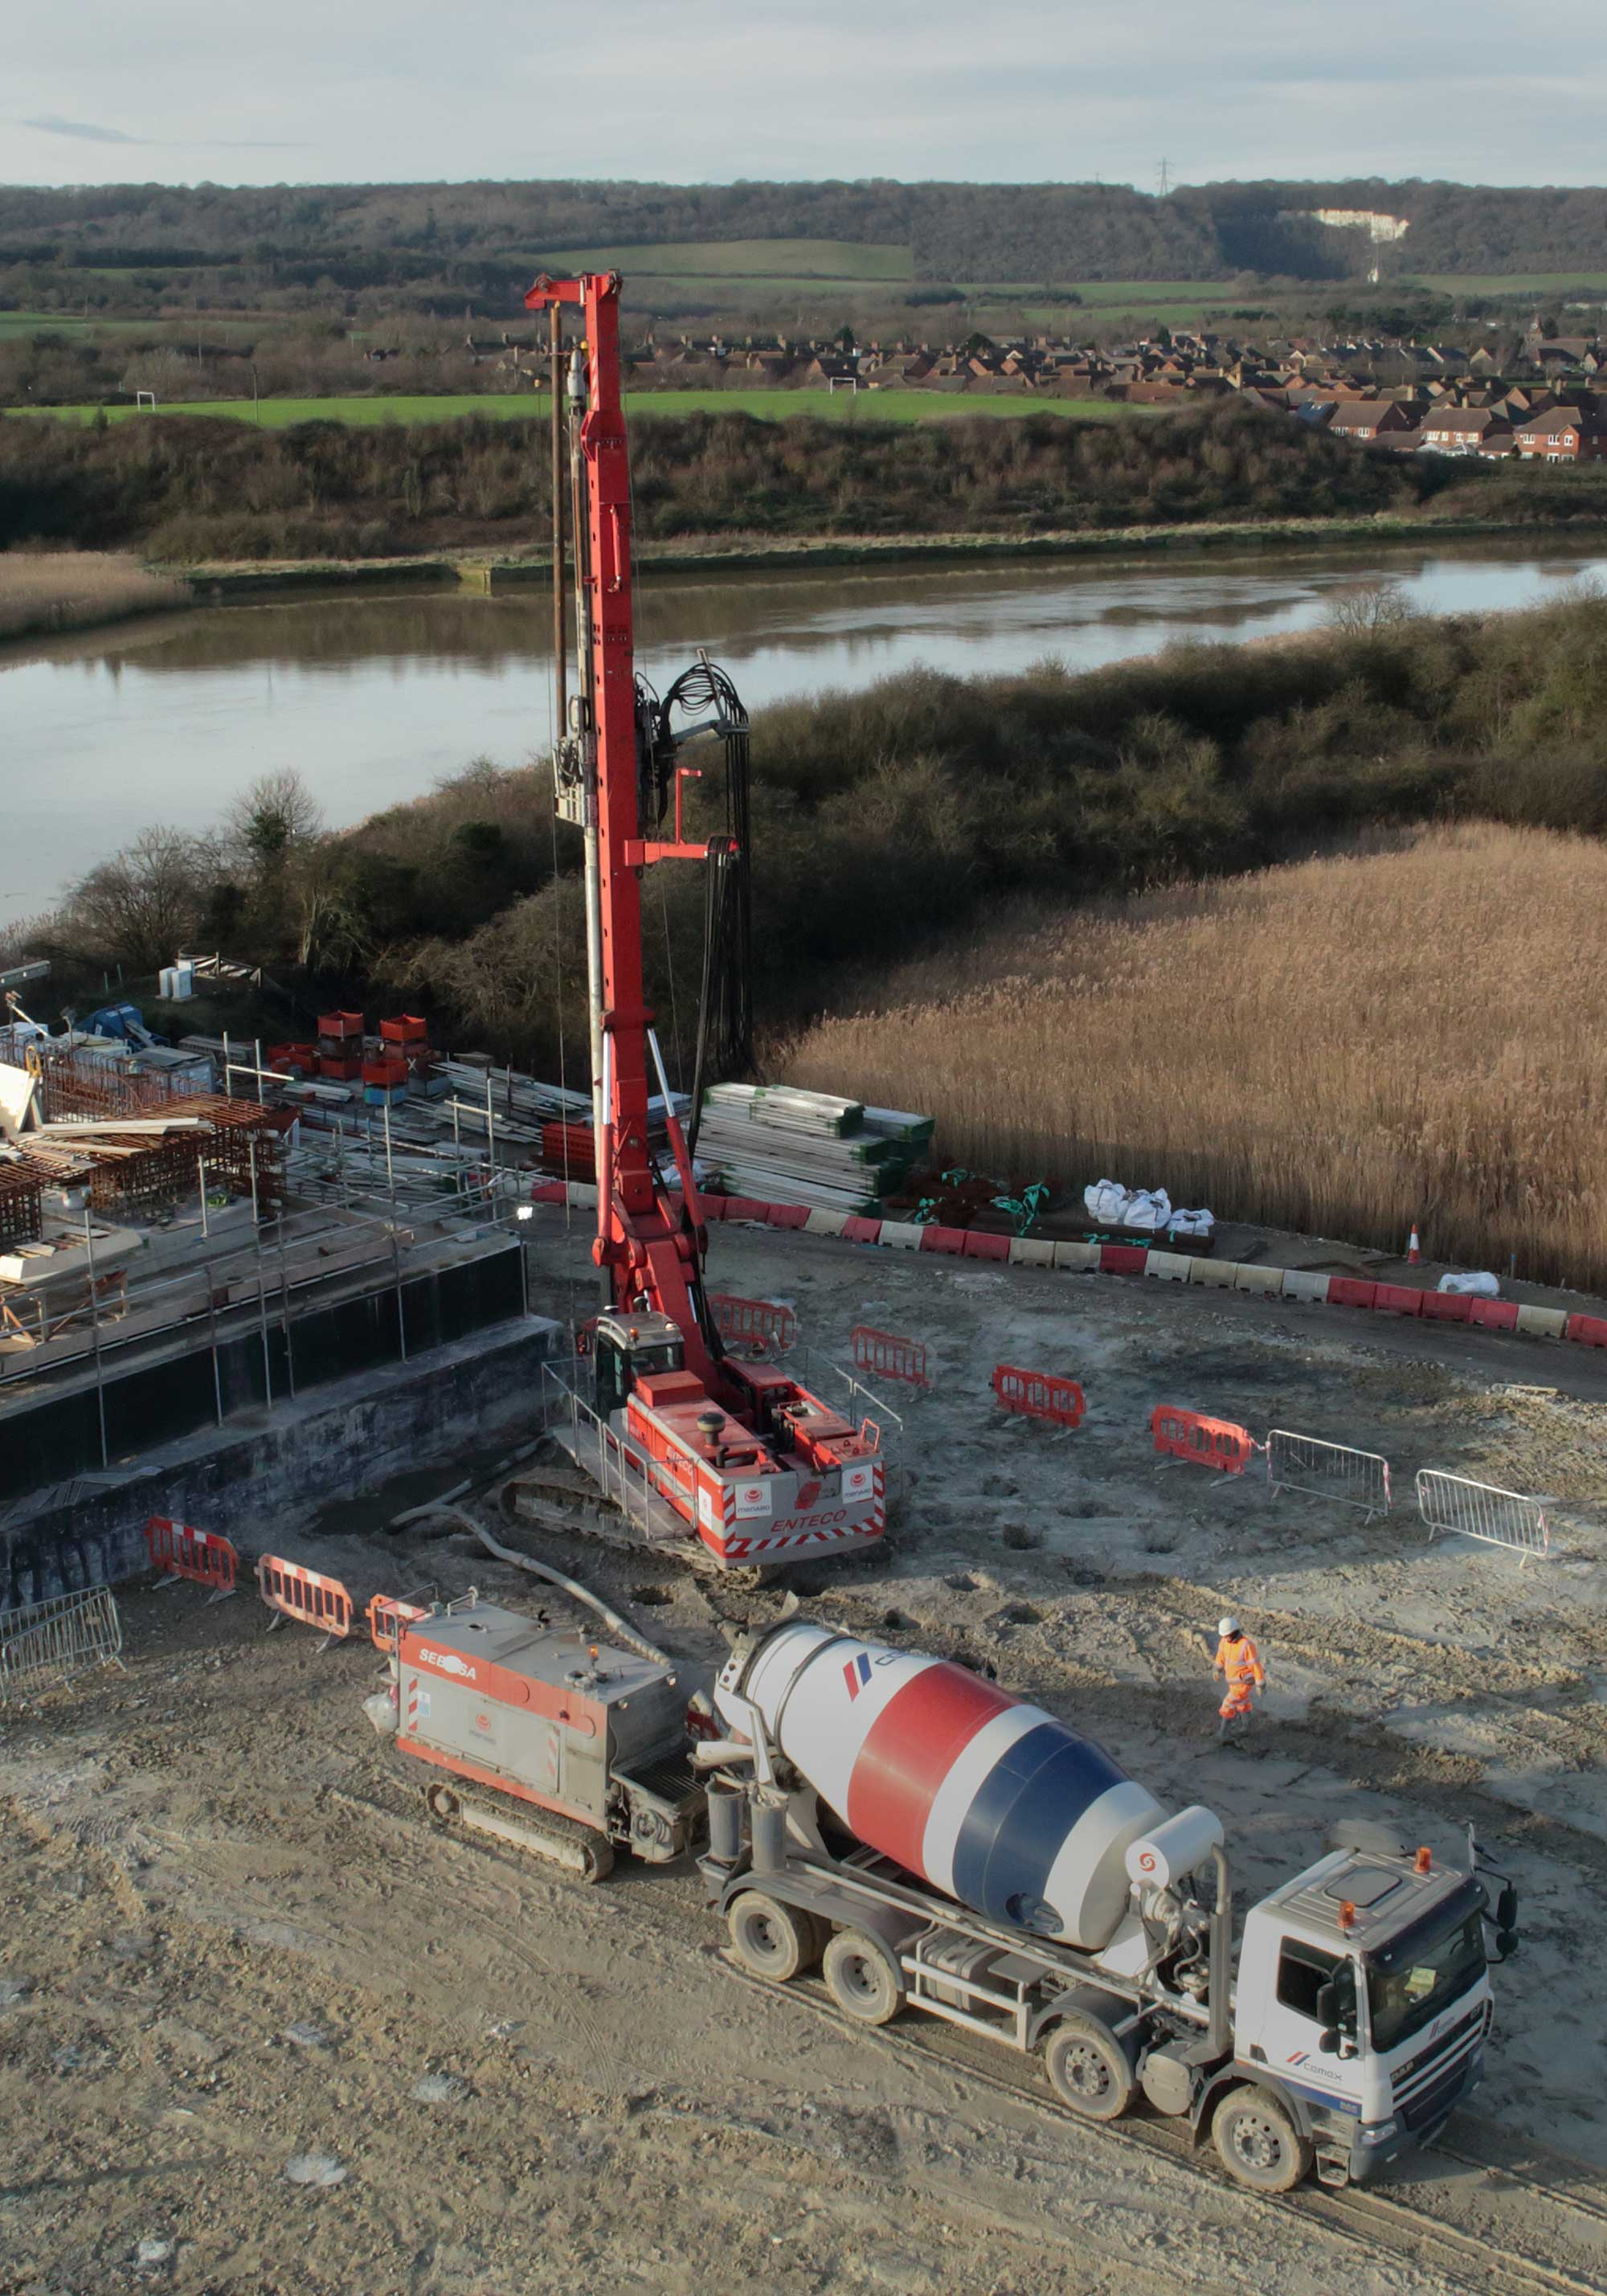 Case Study: Medway Valley Crossing, Holborough